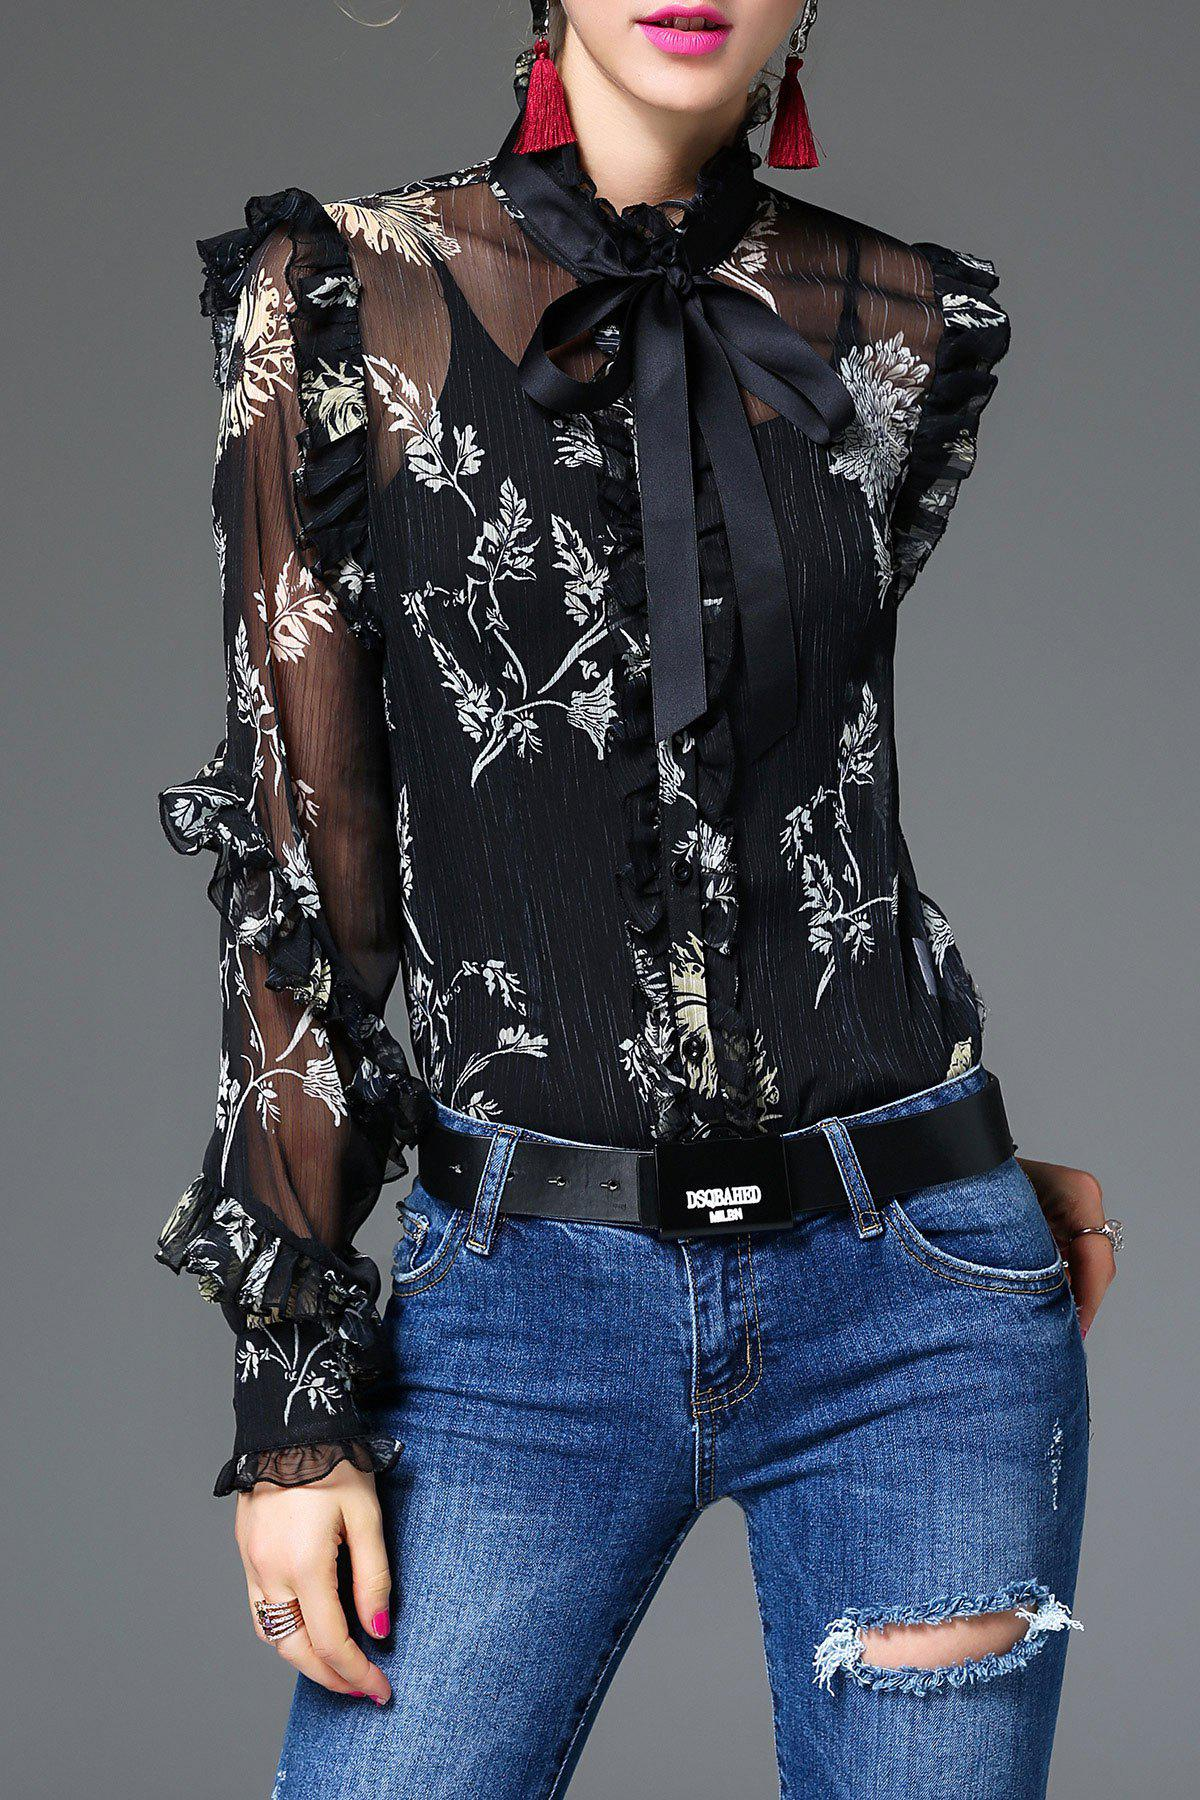 Bow Tie Floral Blouse With Camisole - BLACK L